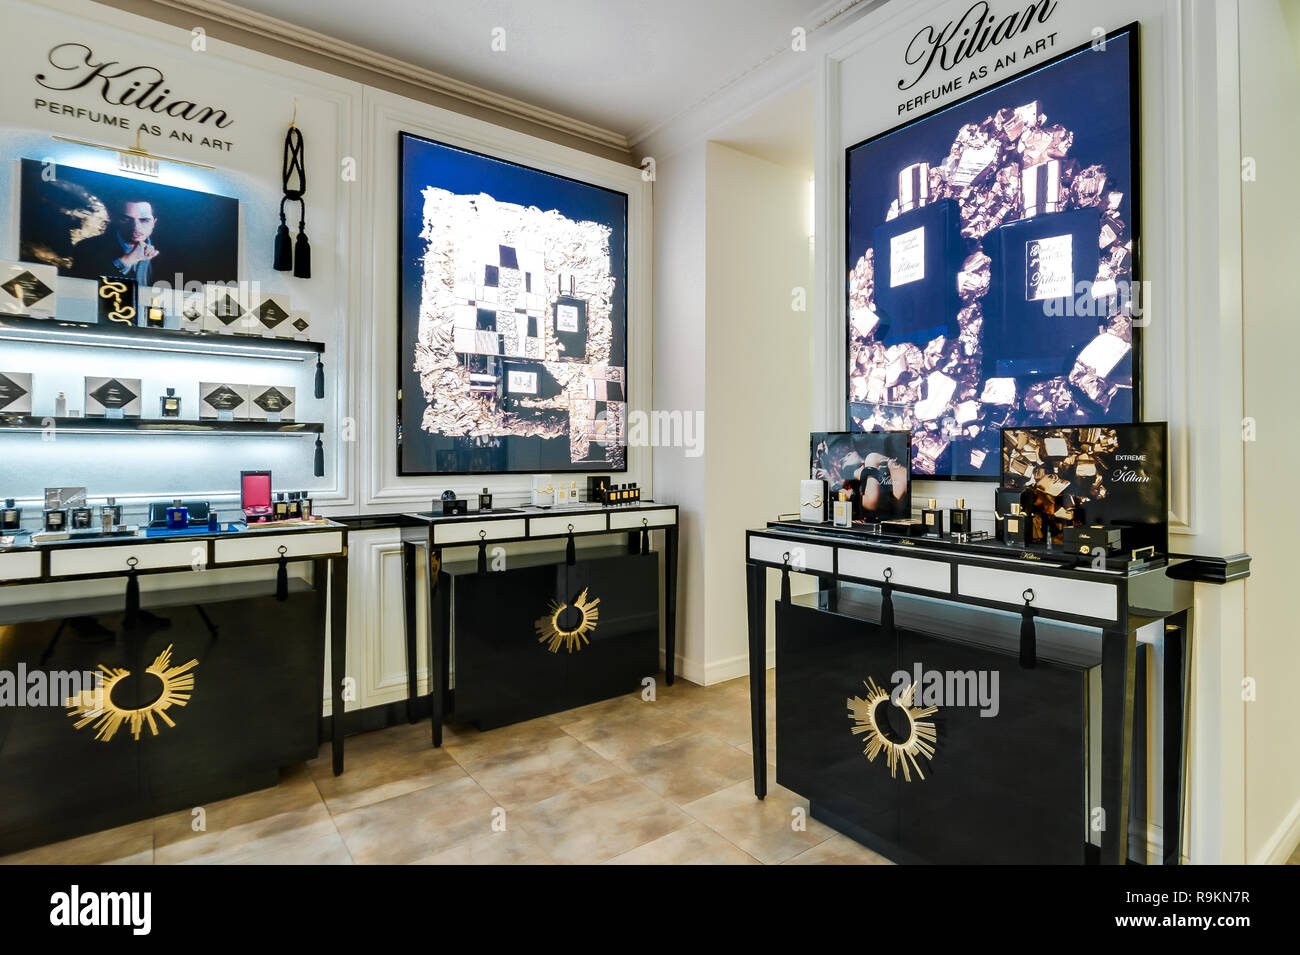 nouveau concept 14f5b 23d51 Boutique Luxe Stock Photos & Boutique Luxe Stock Images - Alamy